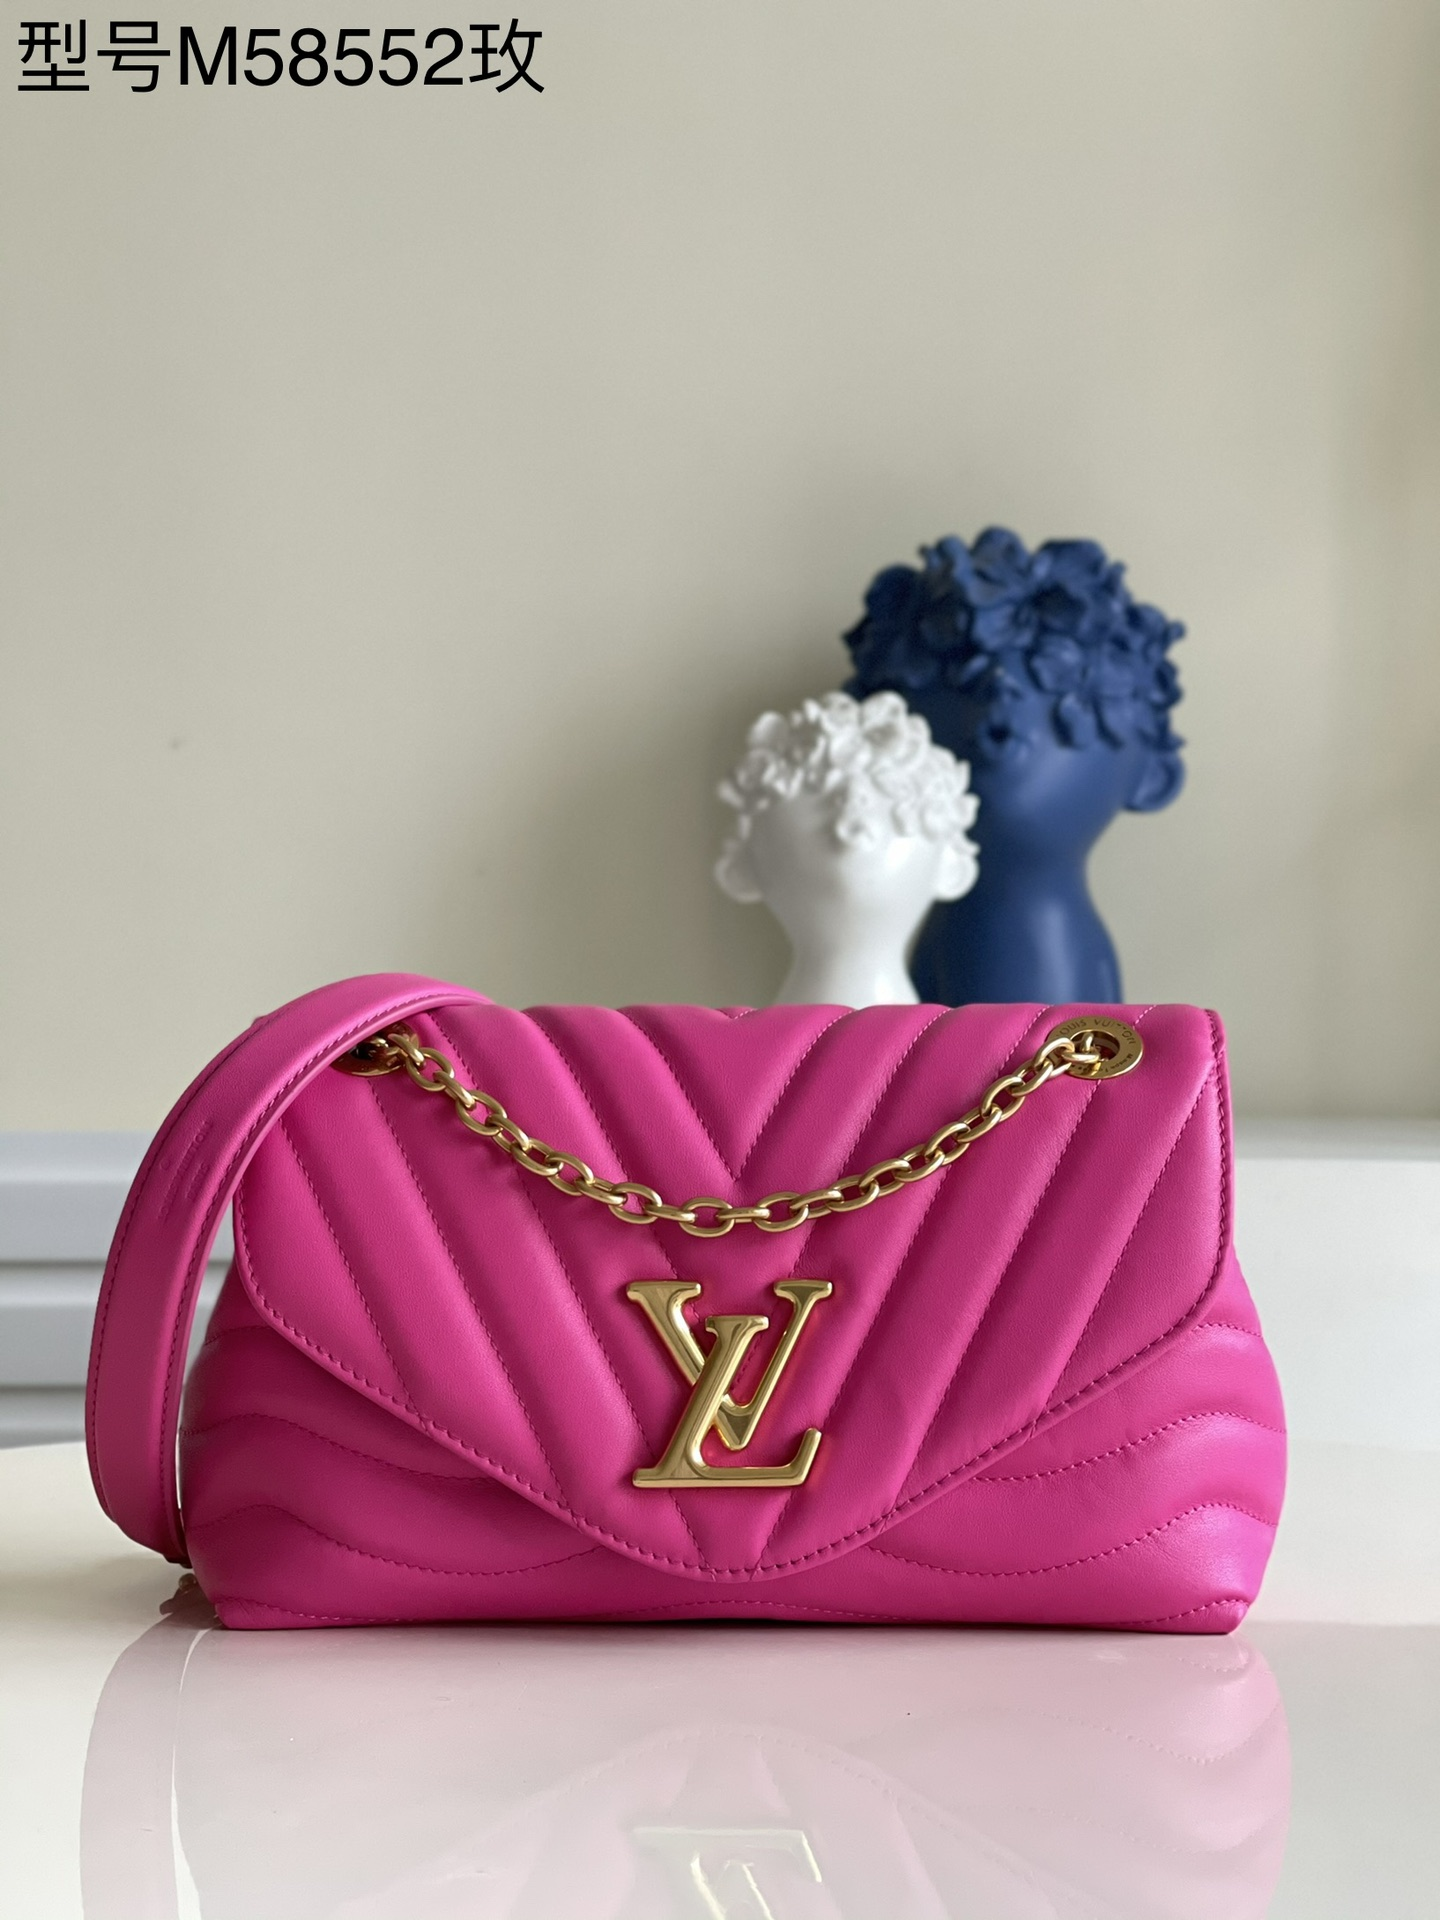 AAA Replica Louis Vuitton M58553 LV New Wave Chain Bag Smooth Cowhide Leather Agathe Pink